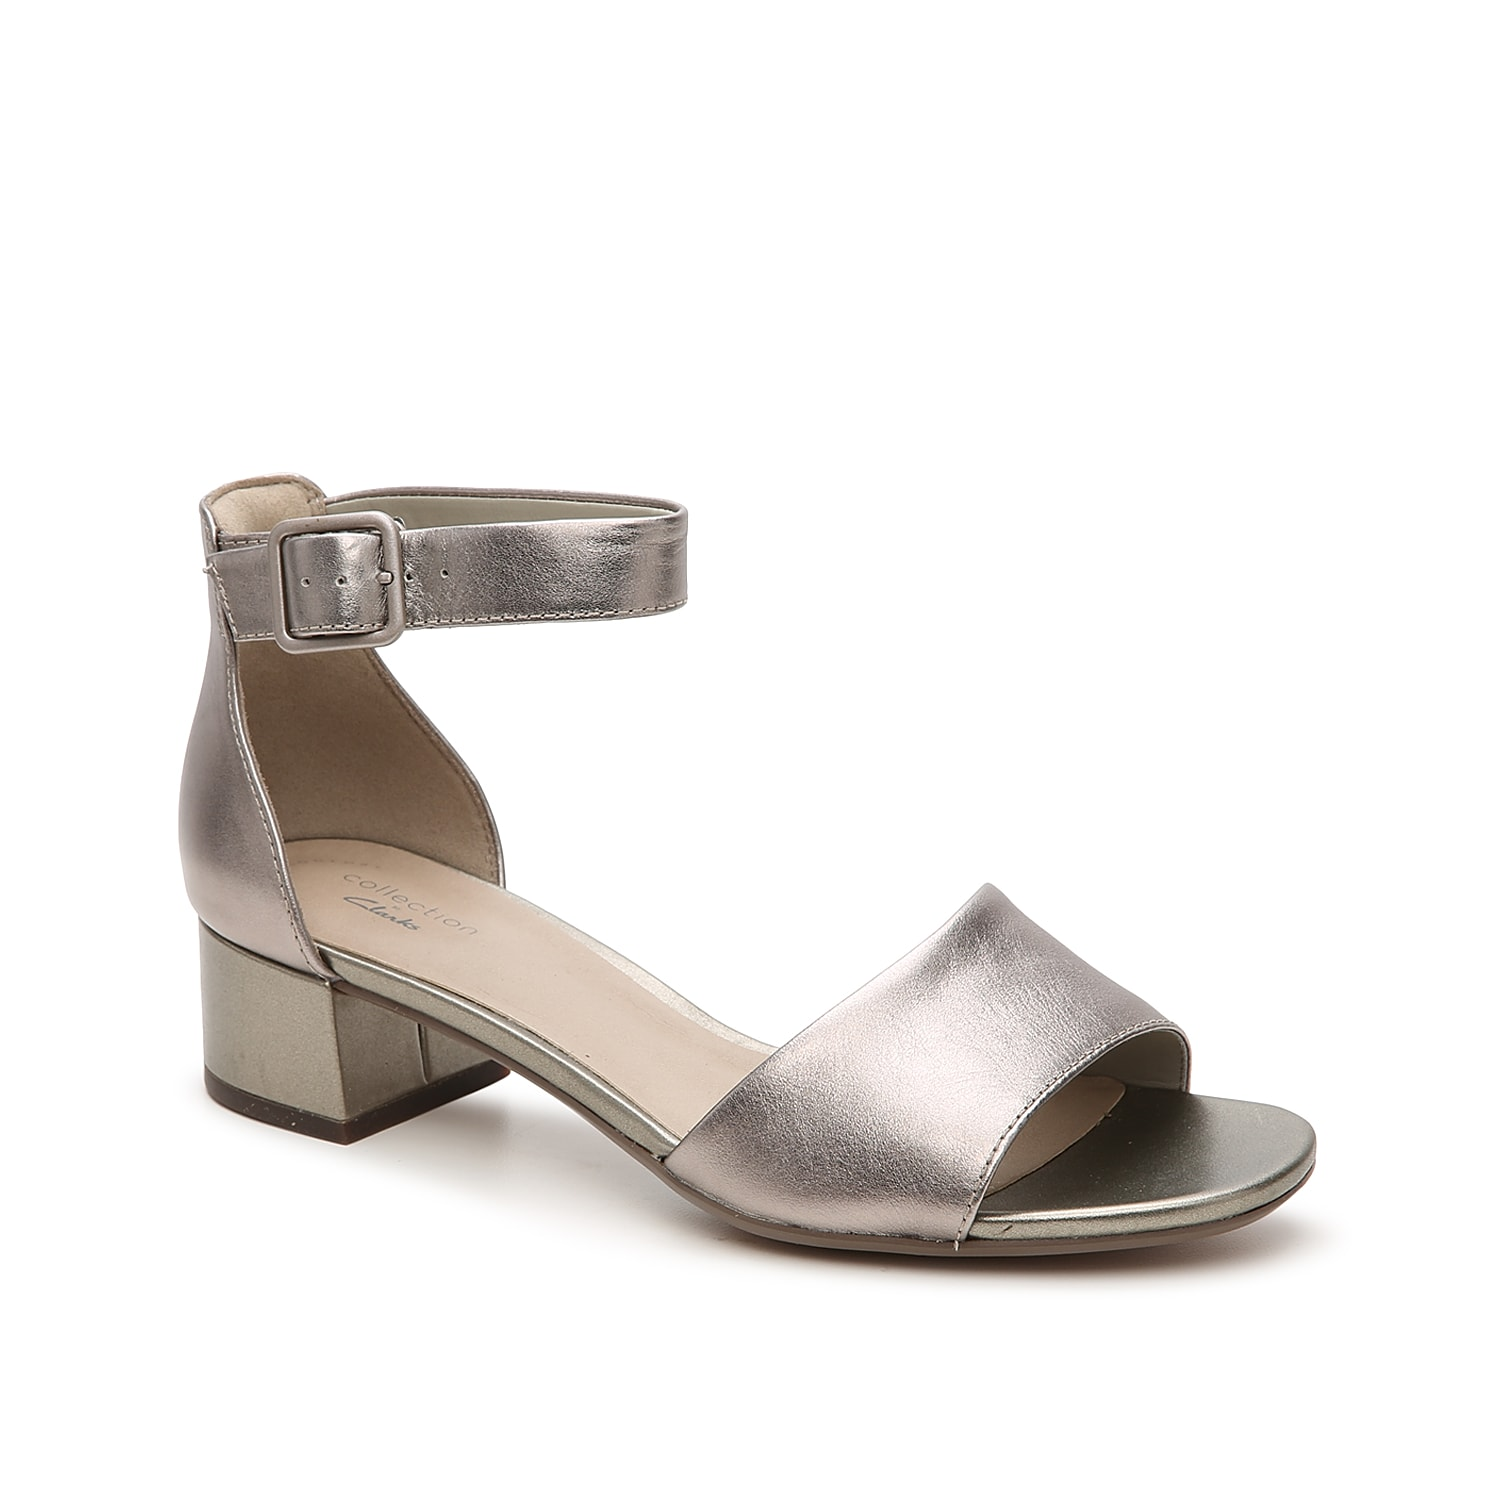 Dress up your ensemble with the Elisa Dedra sandal from Clarks. This classic silhouette is fashioned with a clean, leather profile and buckle accent that gives off a retro-inspired vibe!